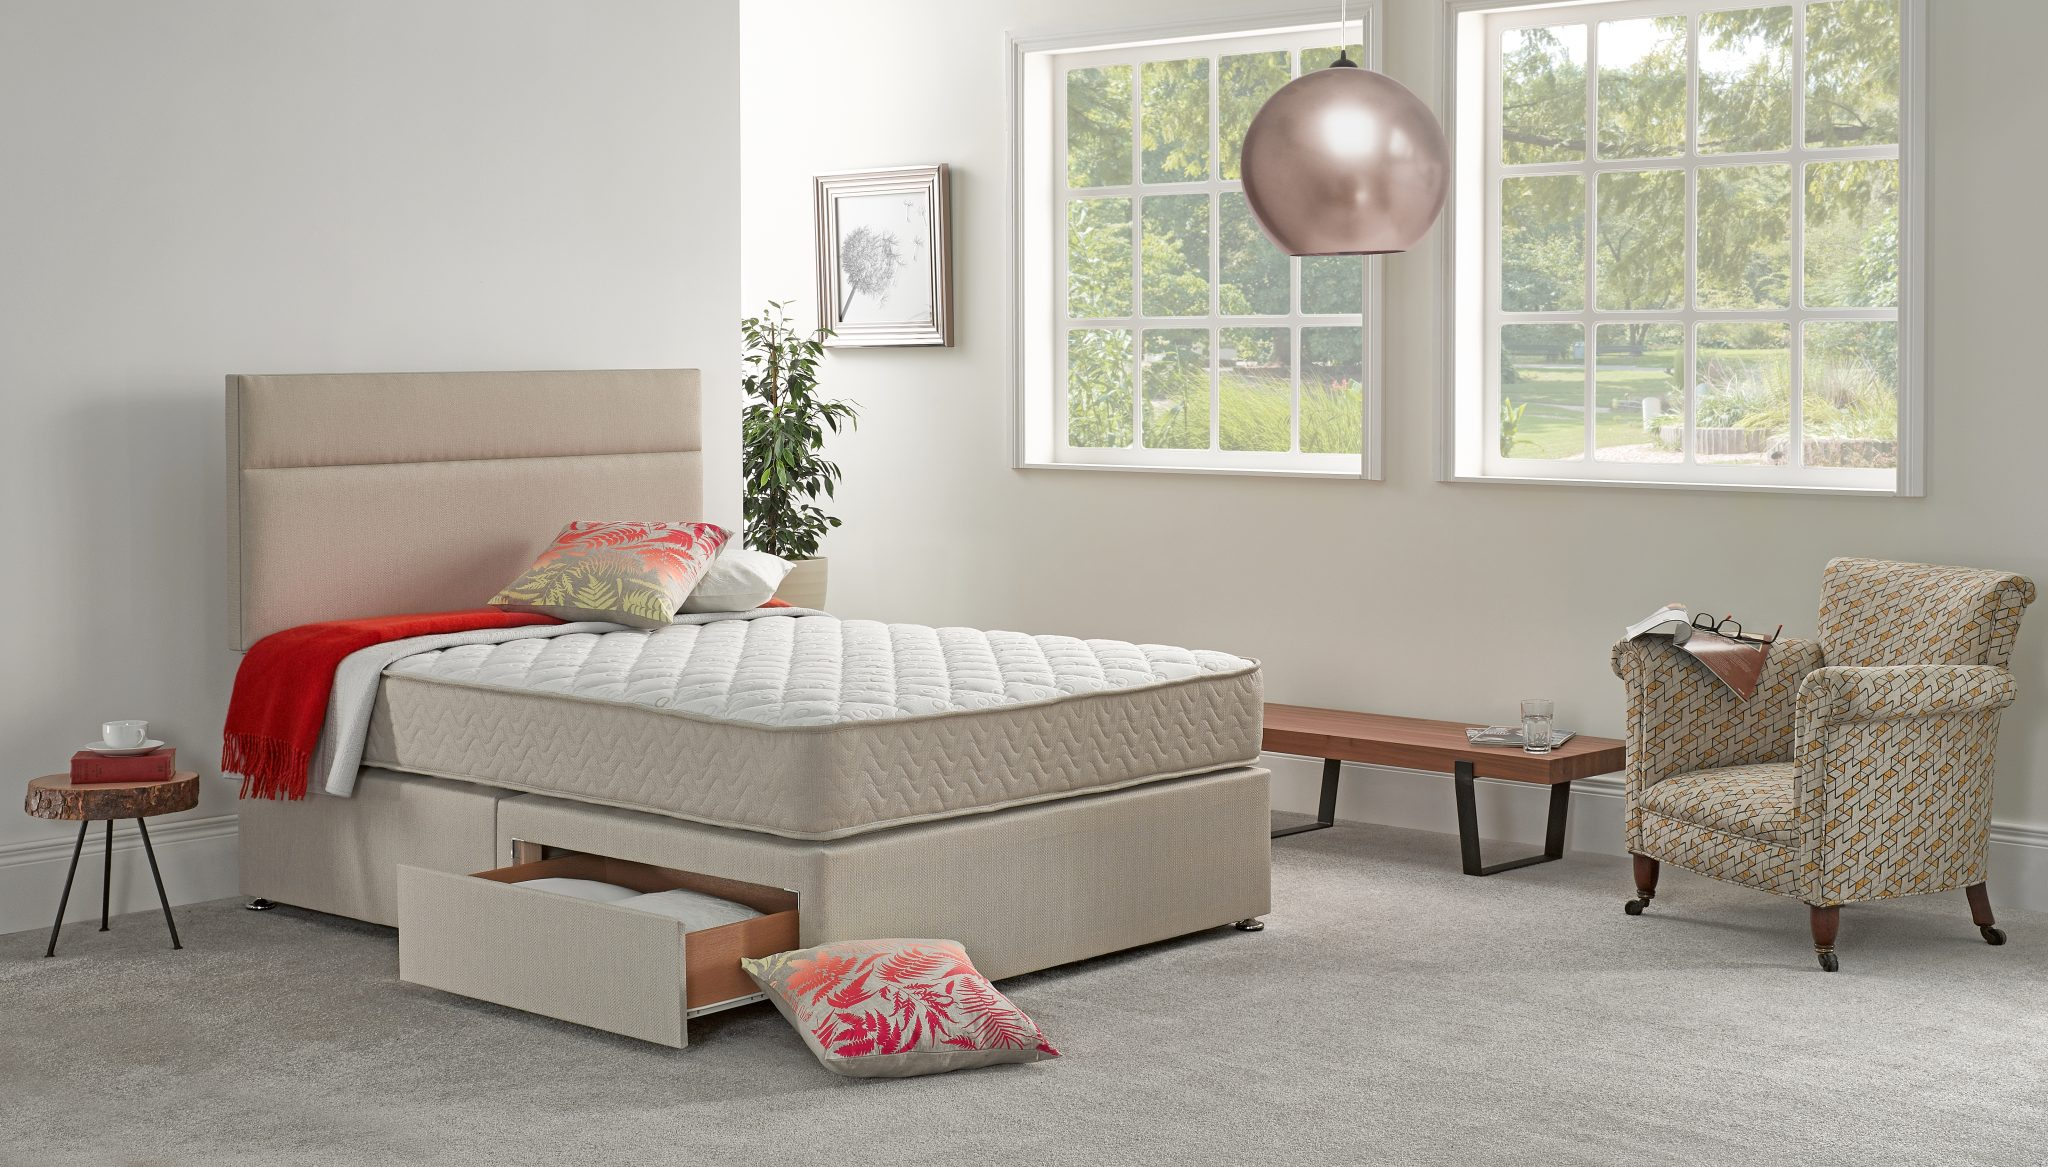 Orthopedic Mattress Reviews and Buying guide by www.snoremagazine.com